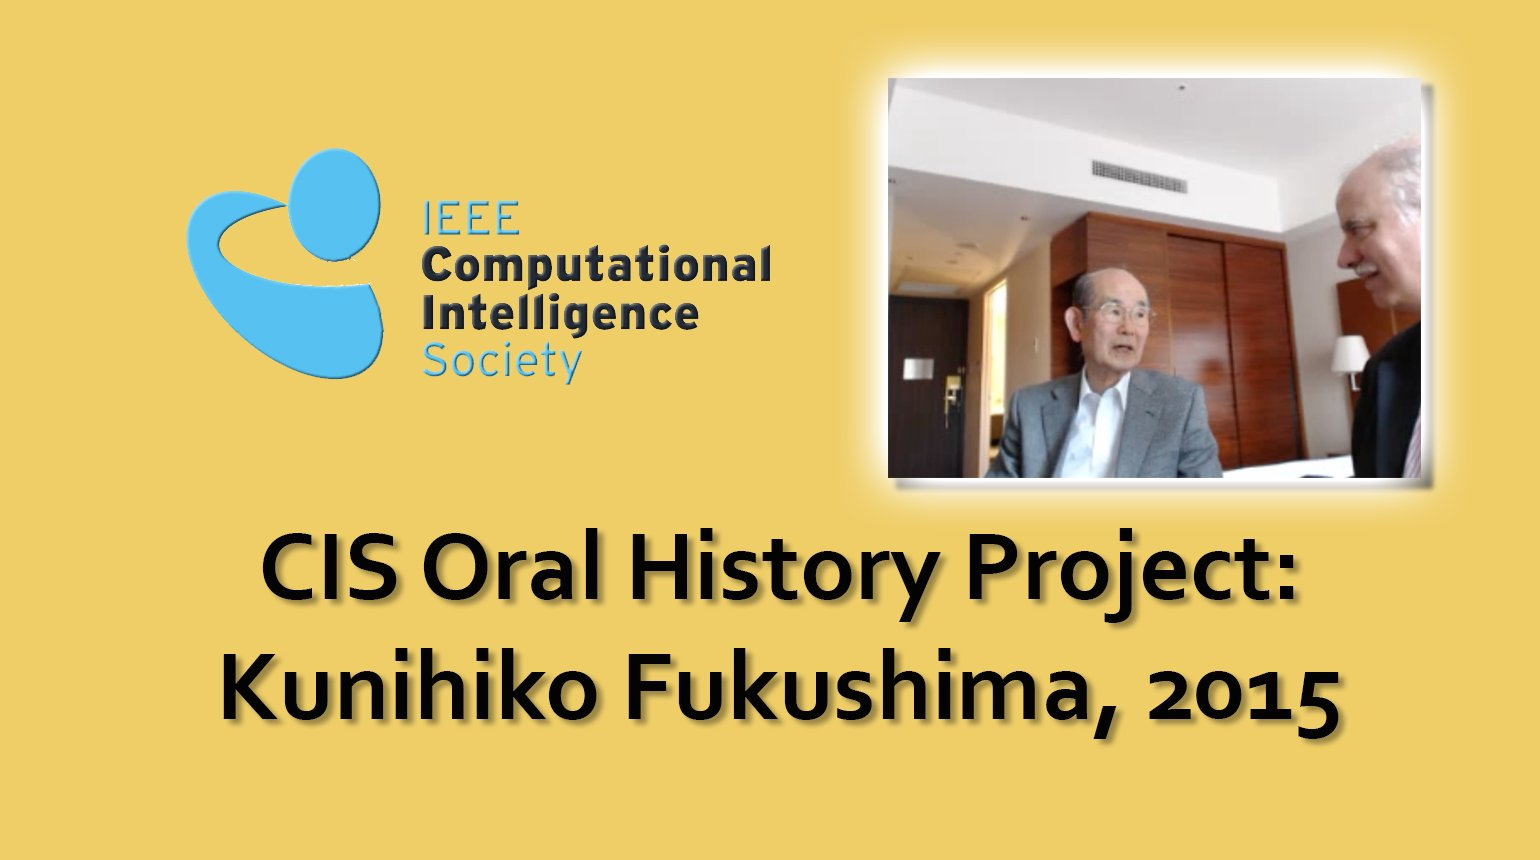 Interview with Kunihiko Fukushima, 2015: CIS Oral History Project